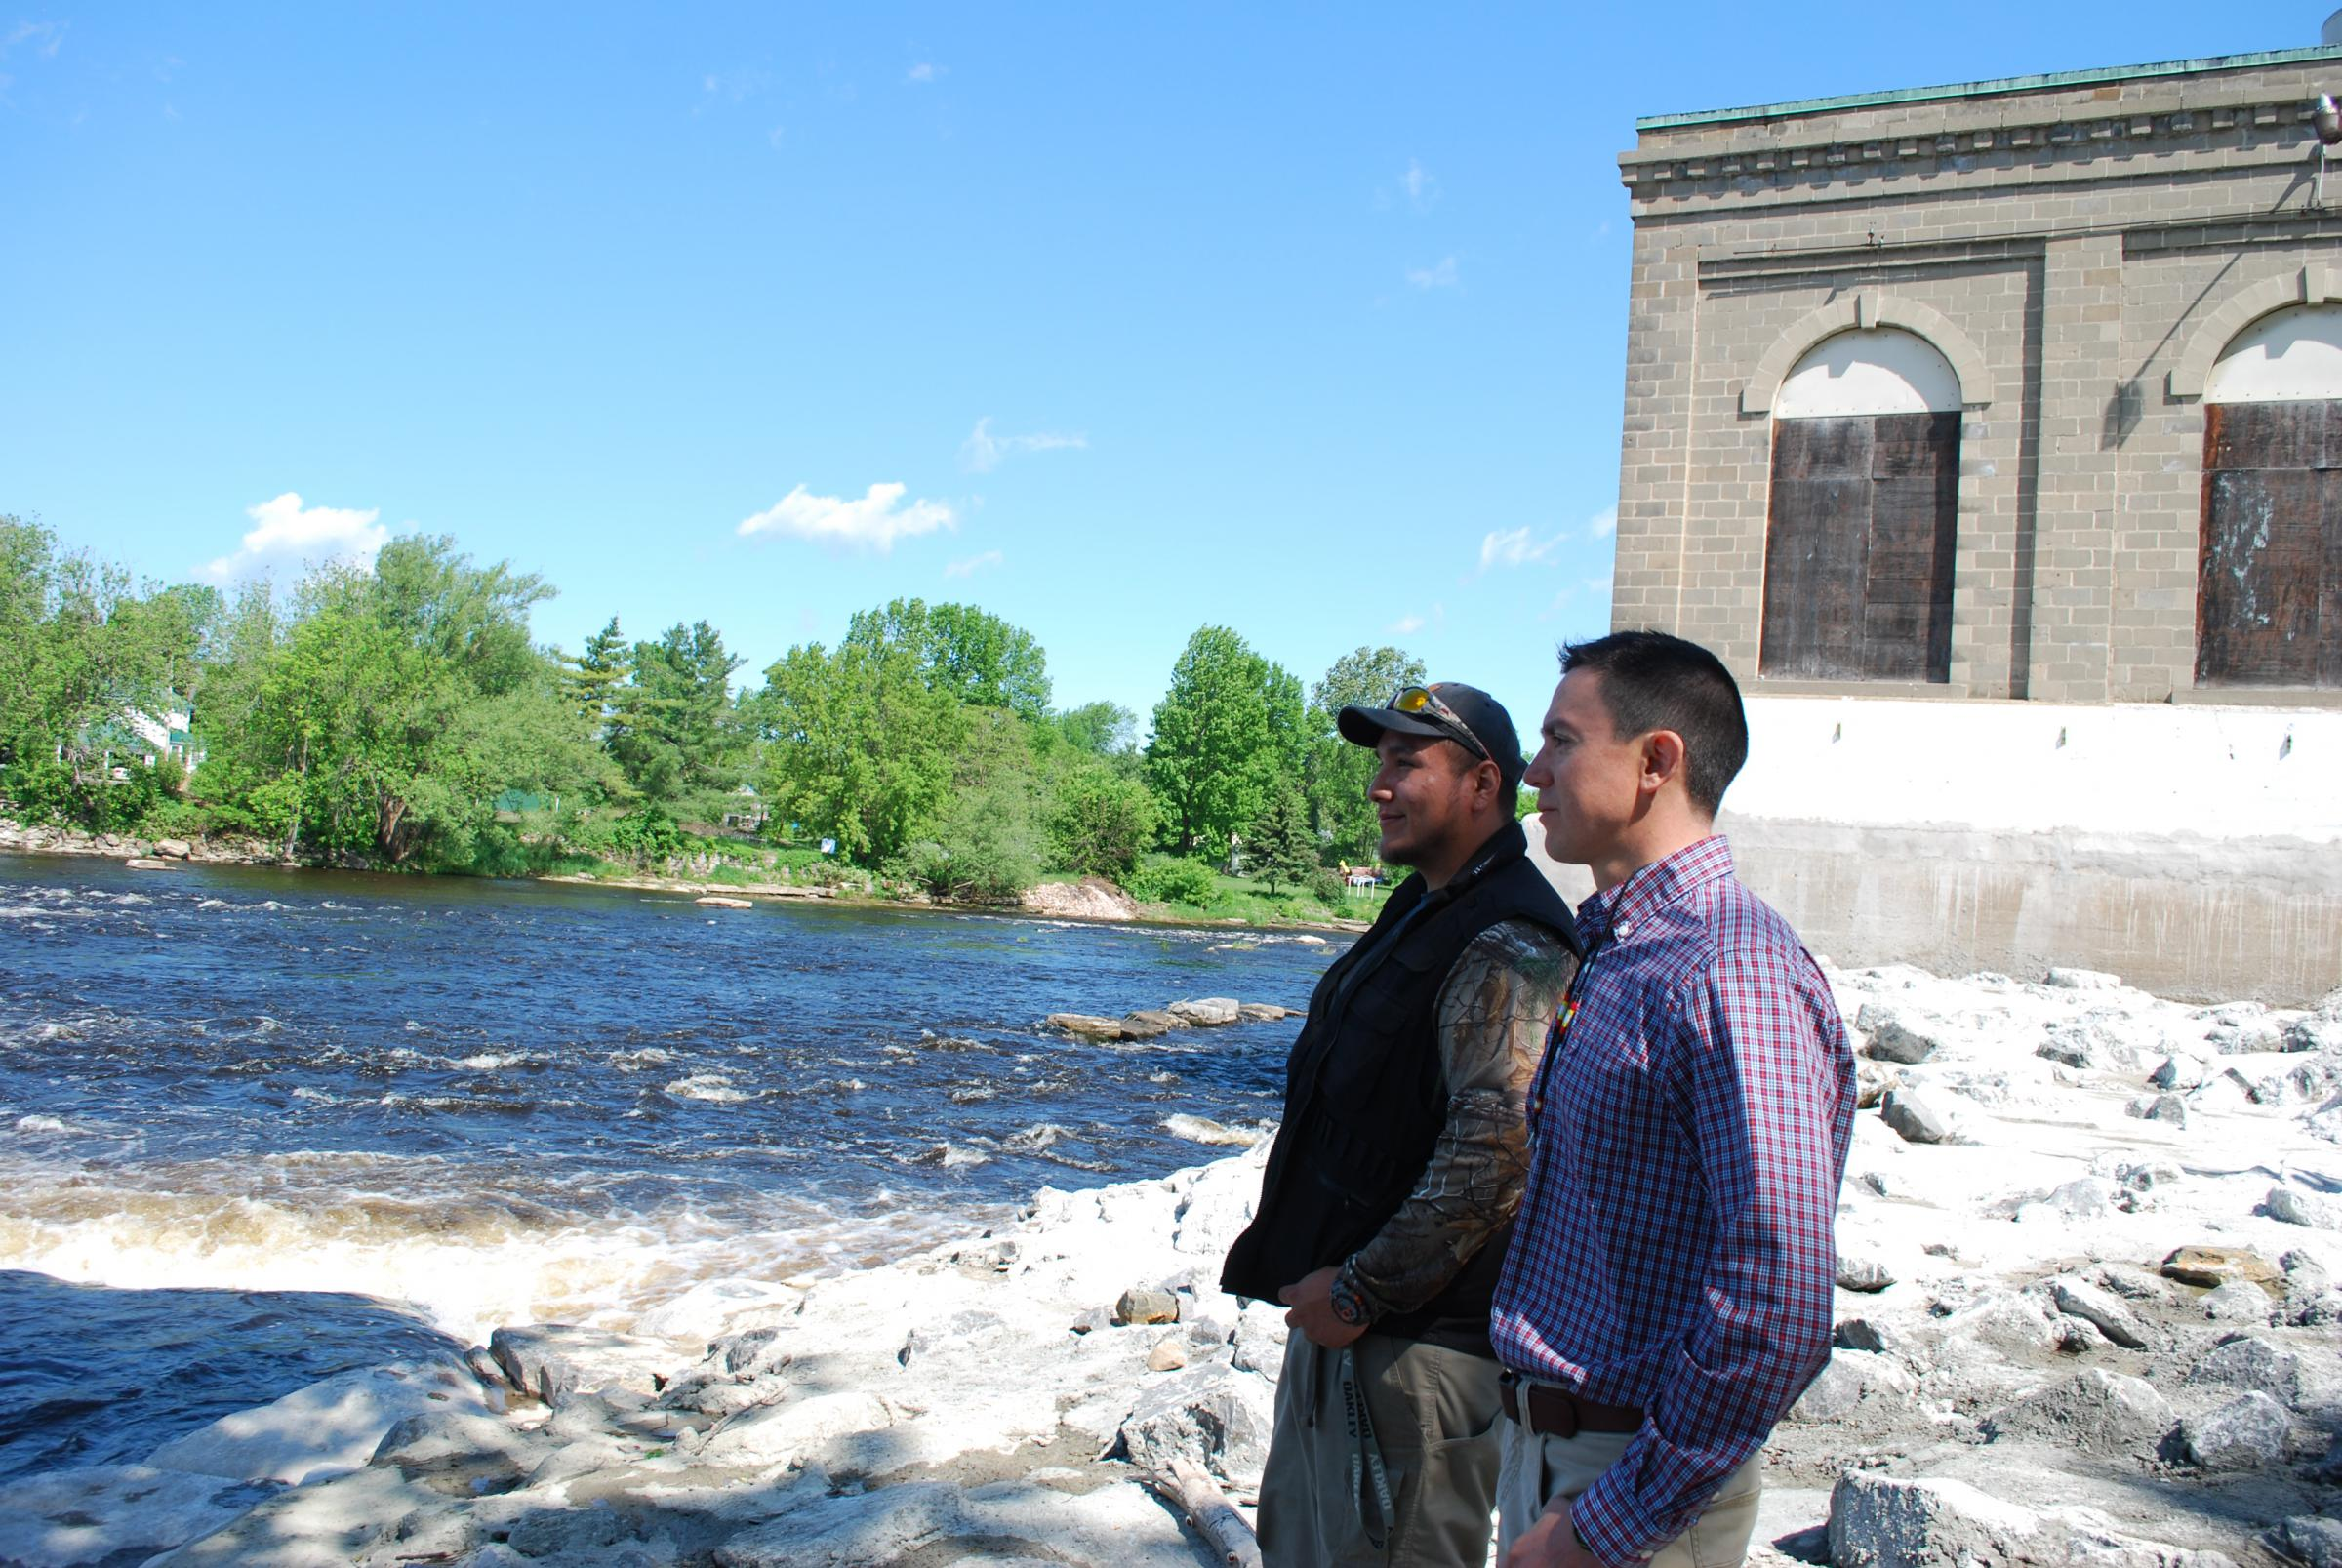 Dam removal sparks cultural revival for mohawk tribe great lakes dam removal sparks cultural revival for mohawk tribe buycottarizona